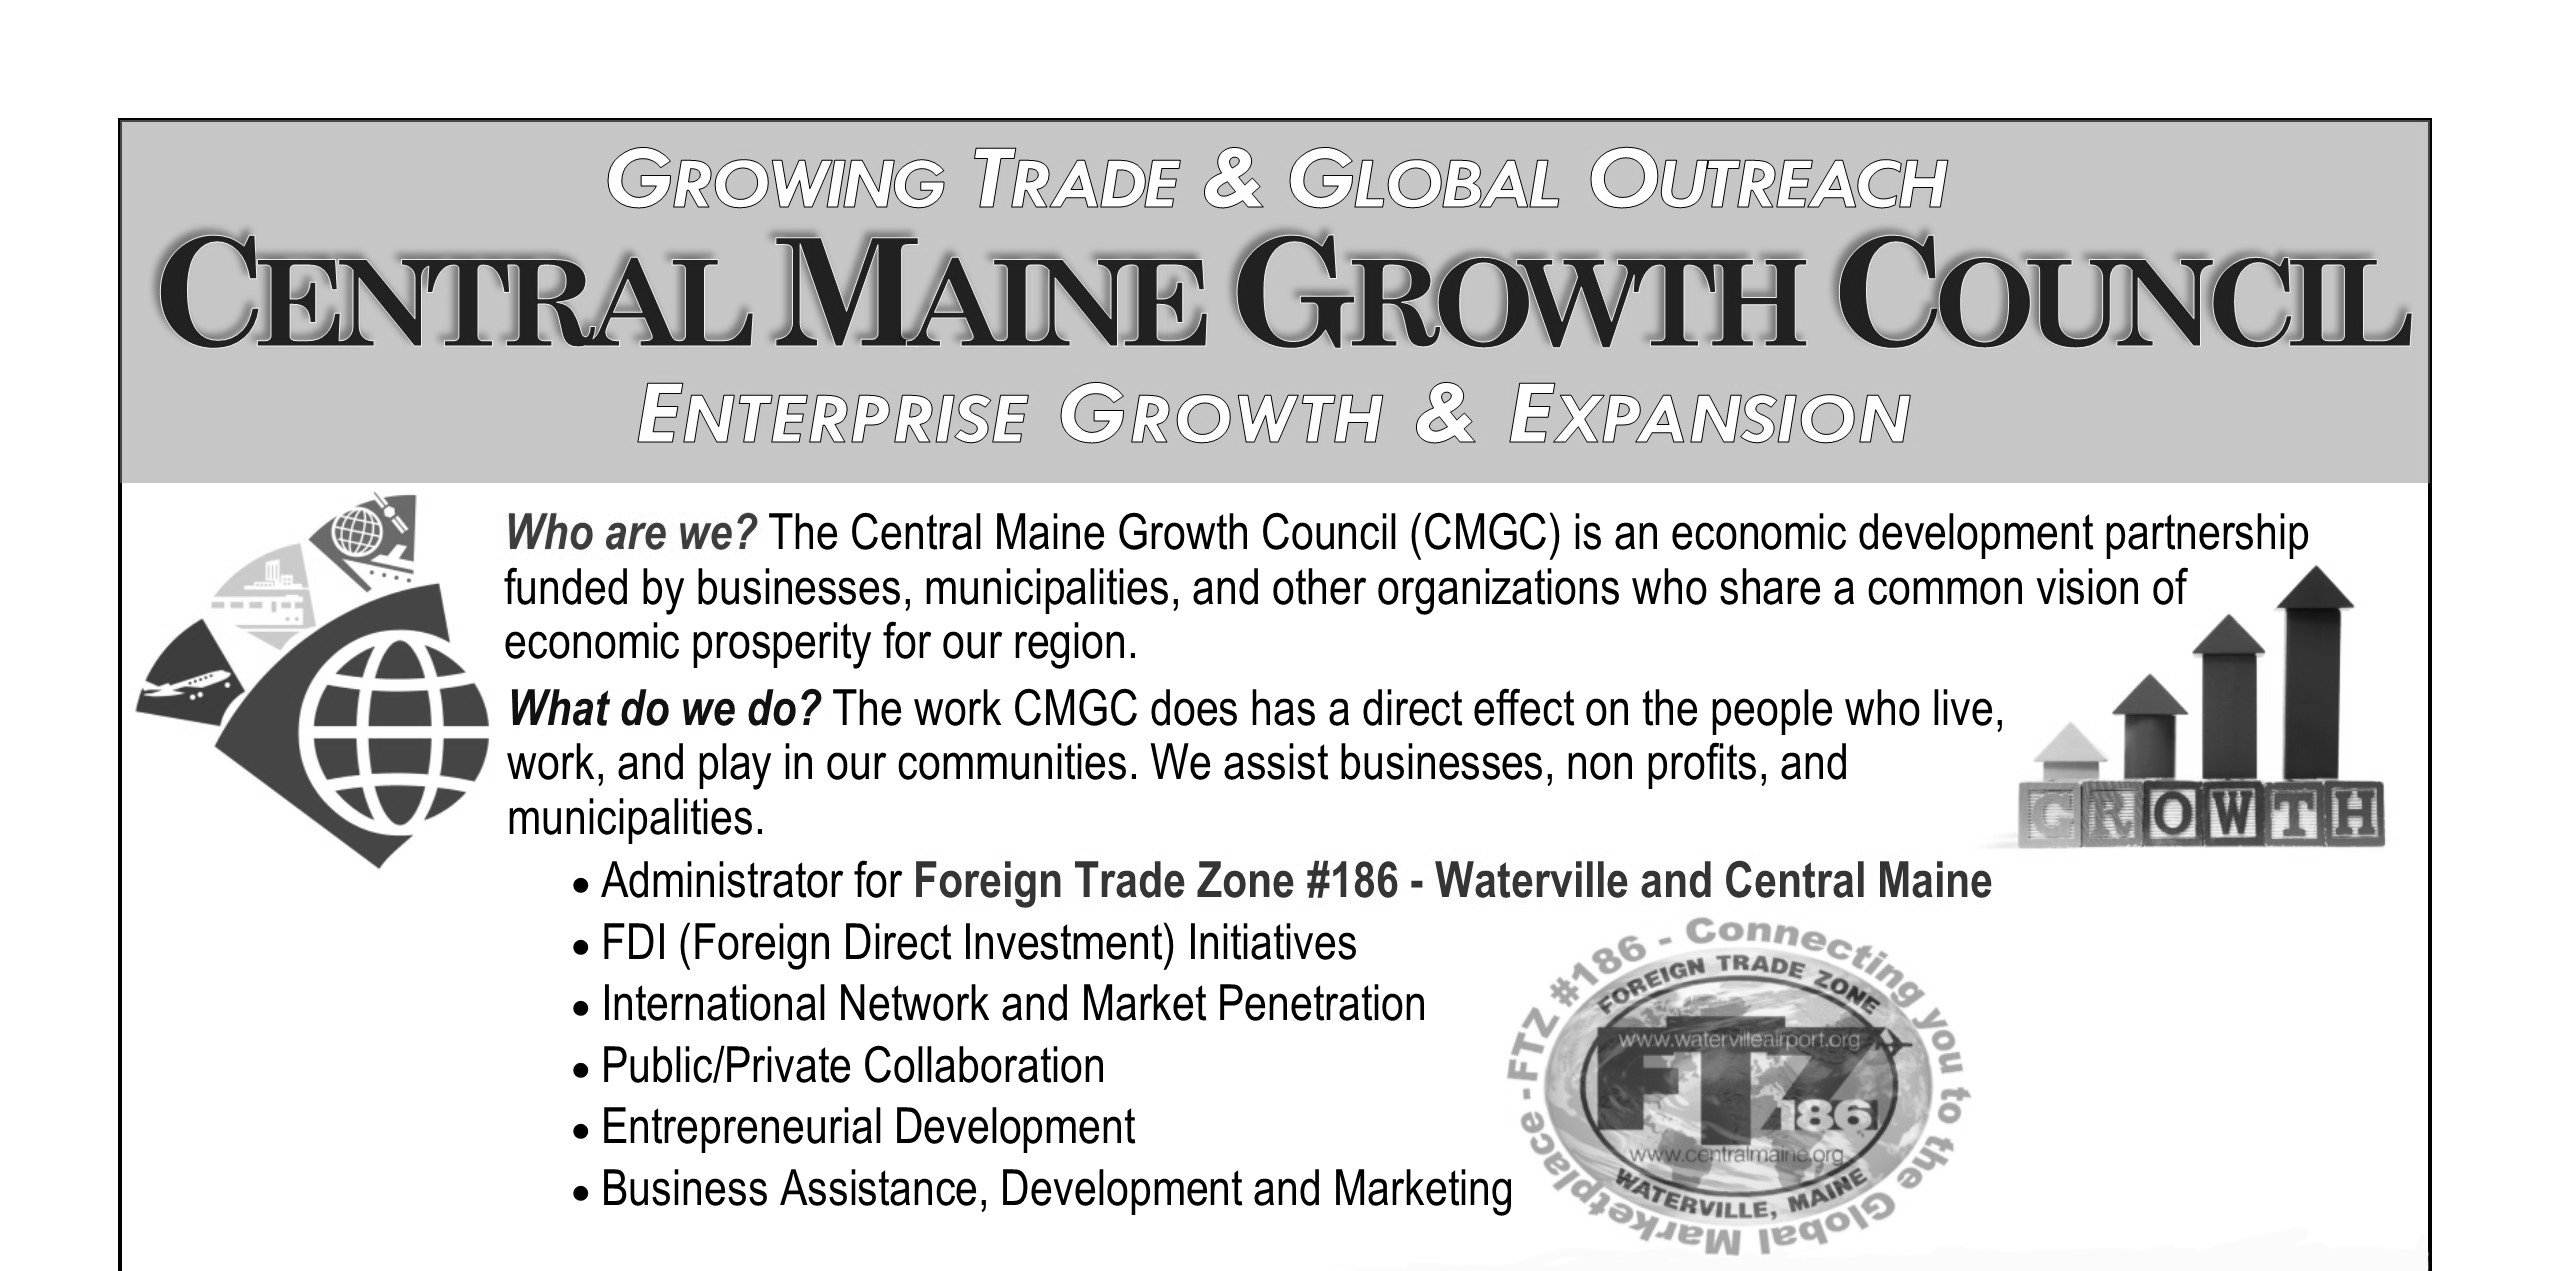 Central Maine Growth Council erased